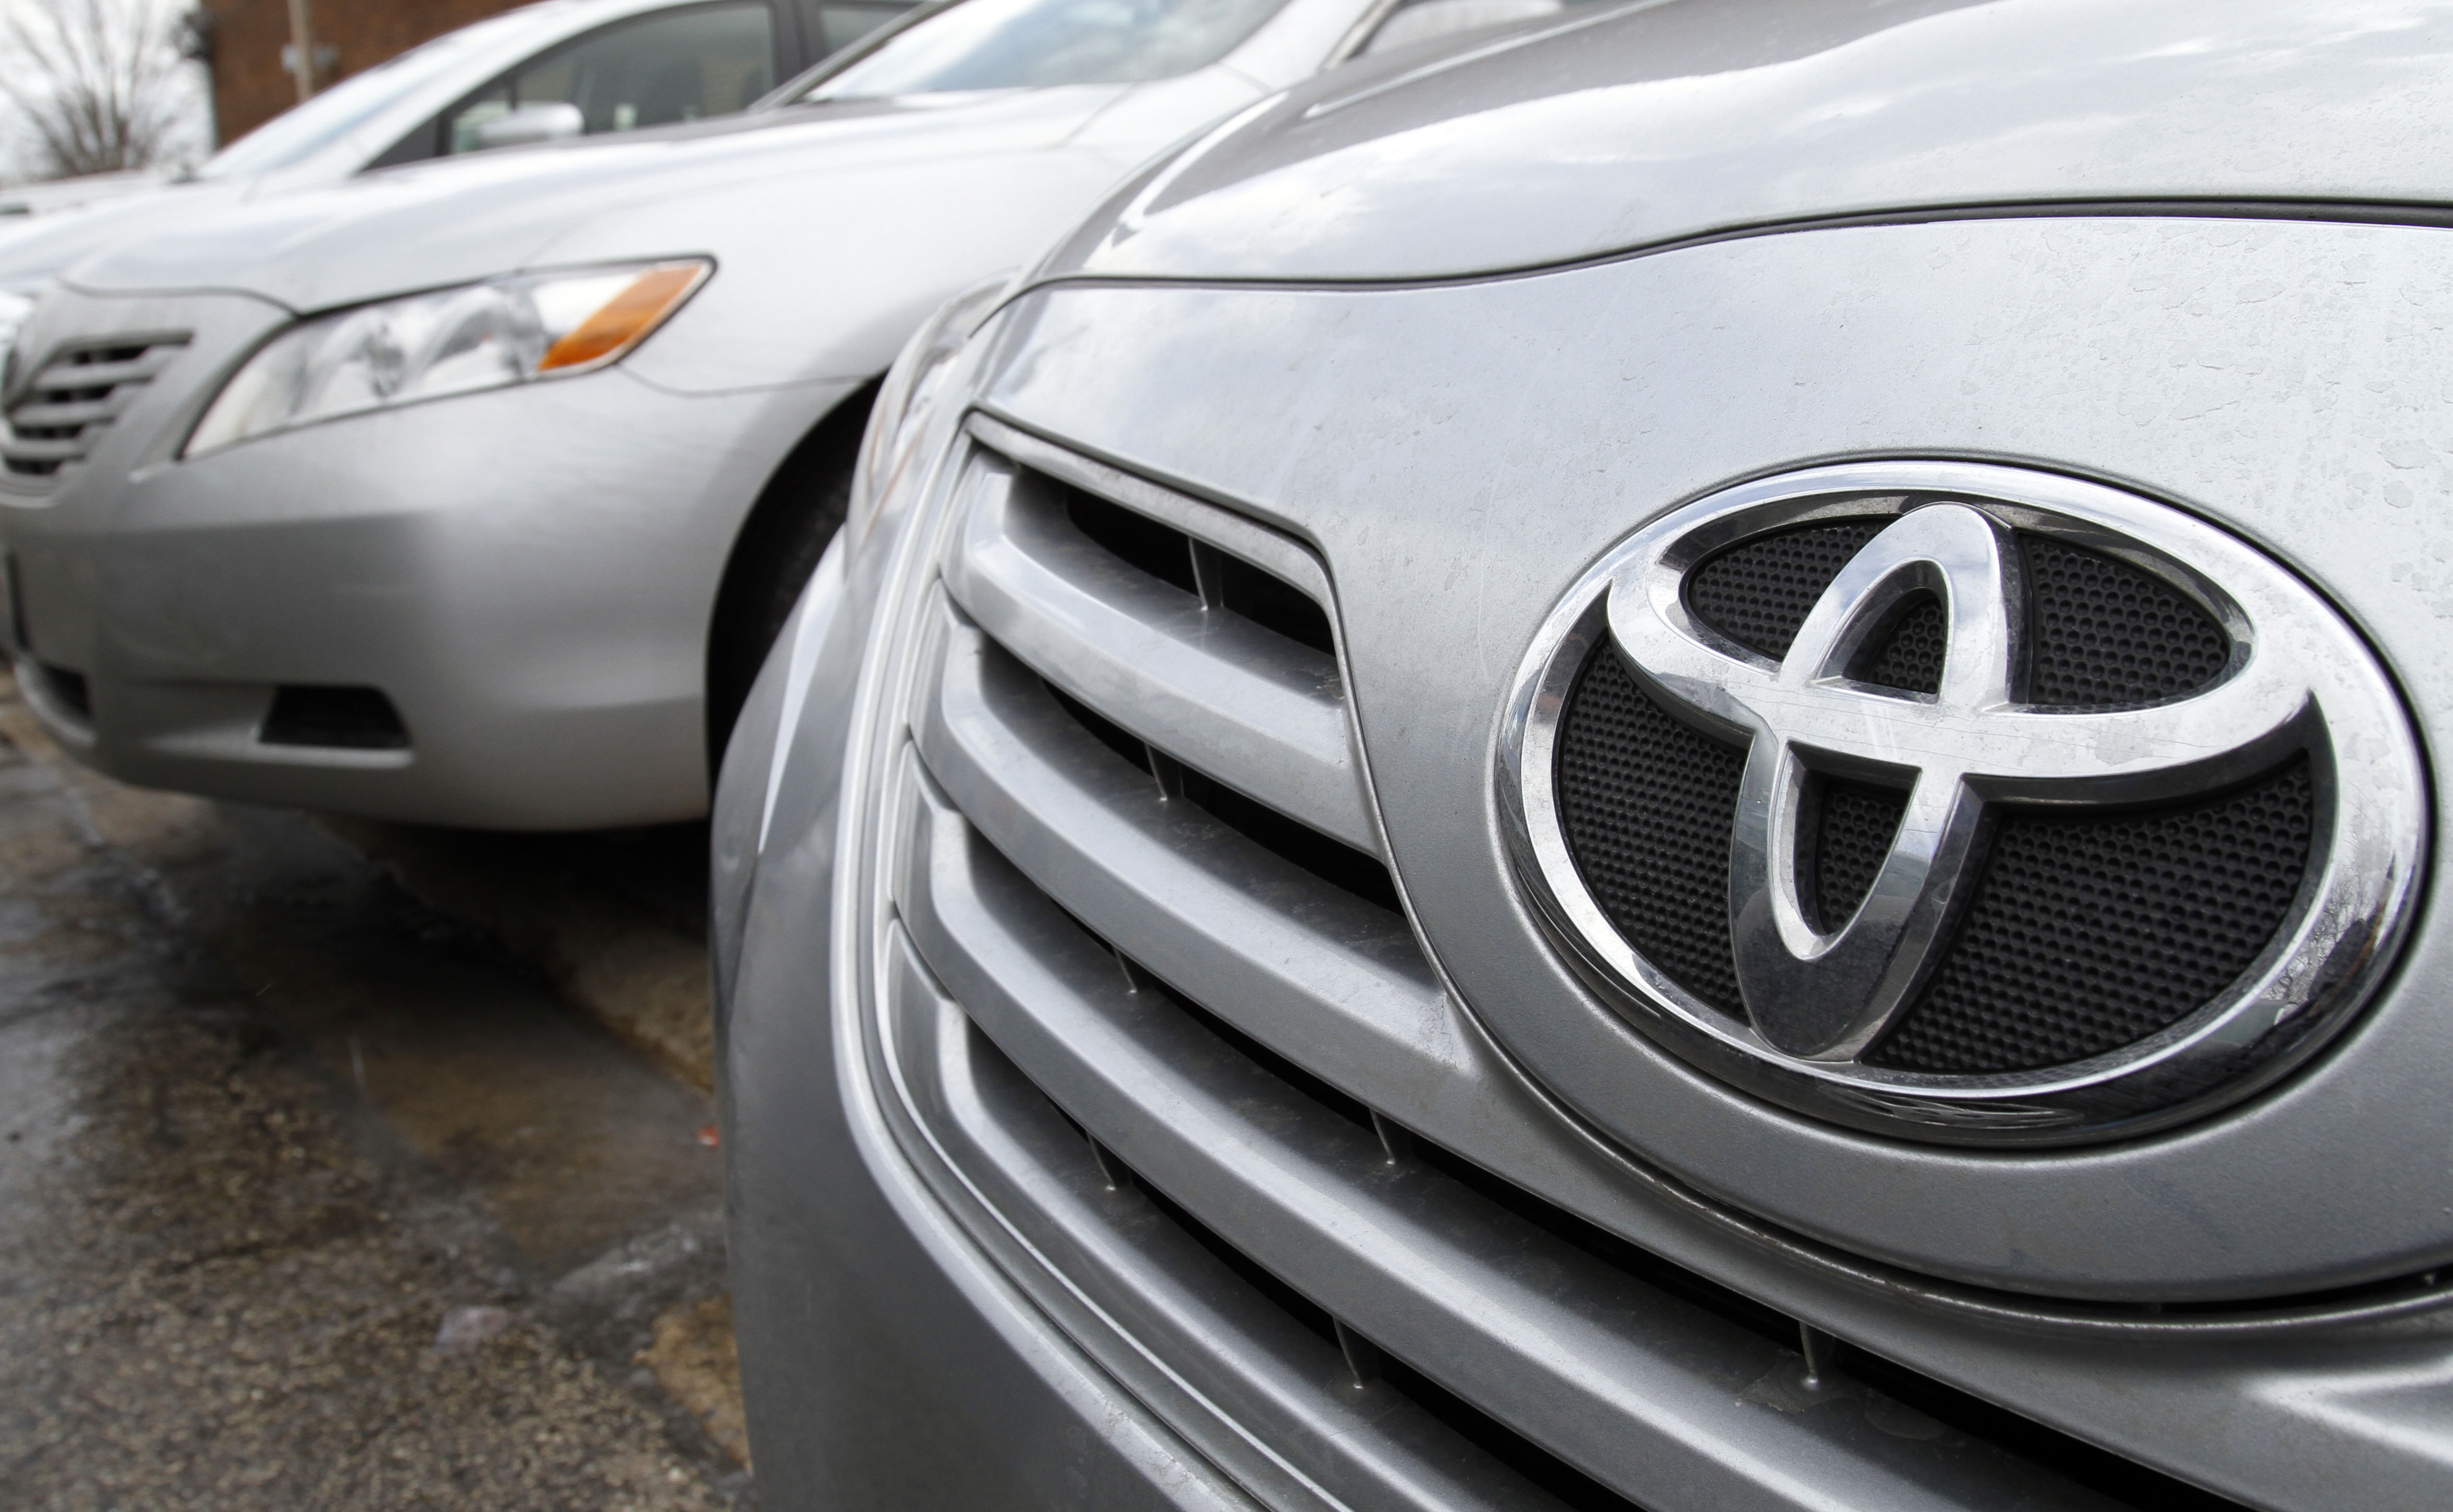 Toyota firing on all cylinders, Amazon thinks outside the box, FedEx surges